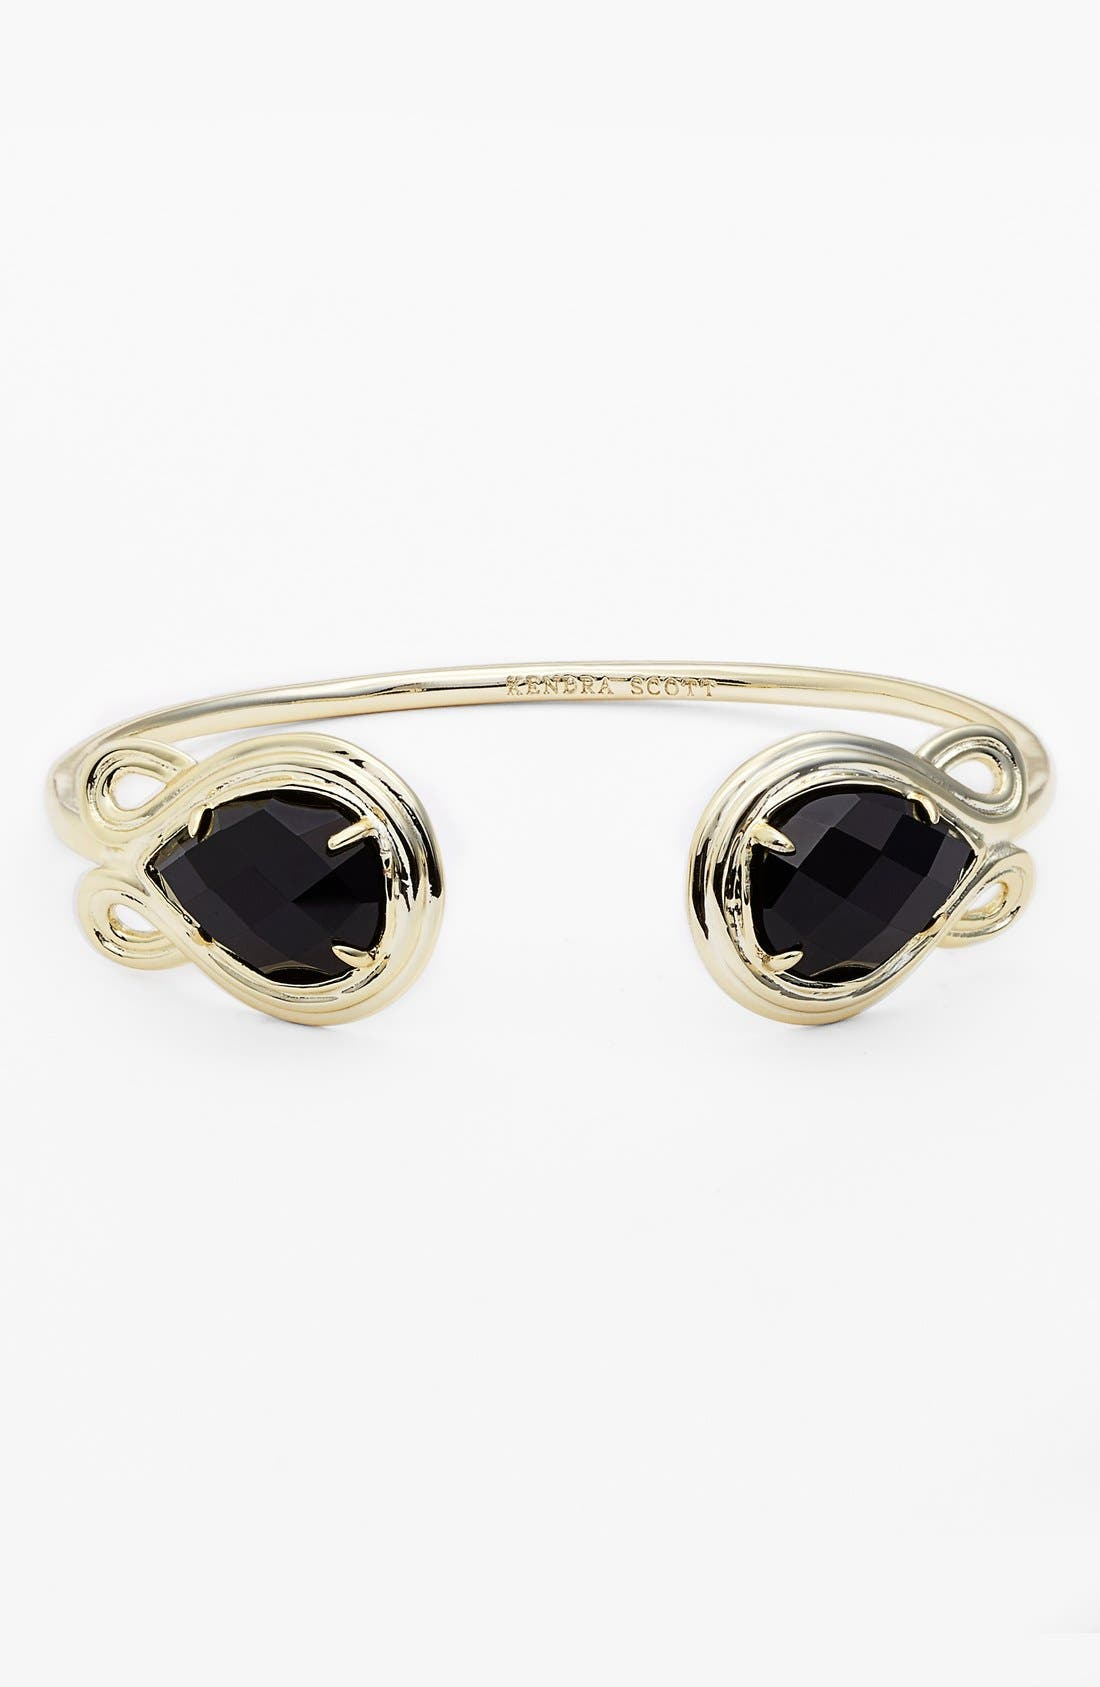 Alternate Image 1 Selected - Kendra Scott 'Andy' Station Cuff